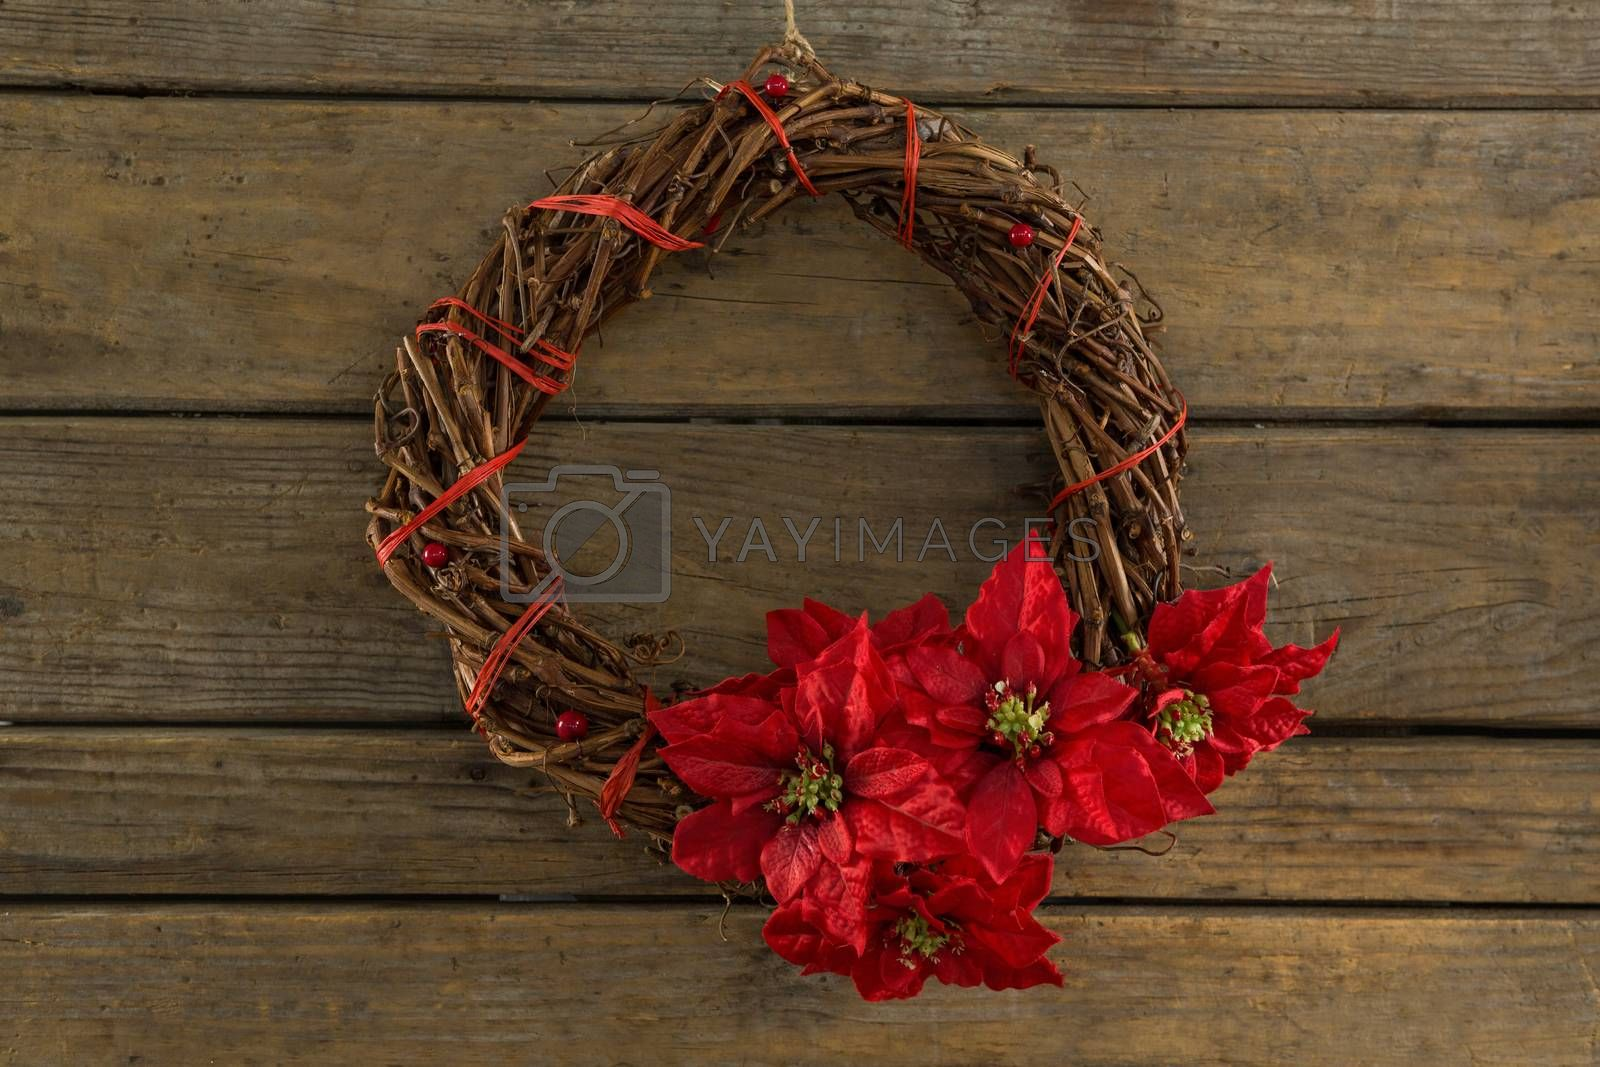 Overhead view of wreath with red poinsettia flowers by Wavebreakmedia